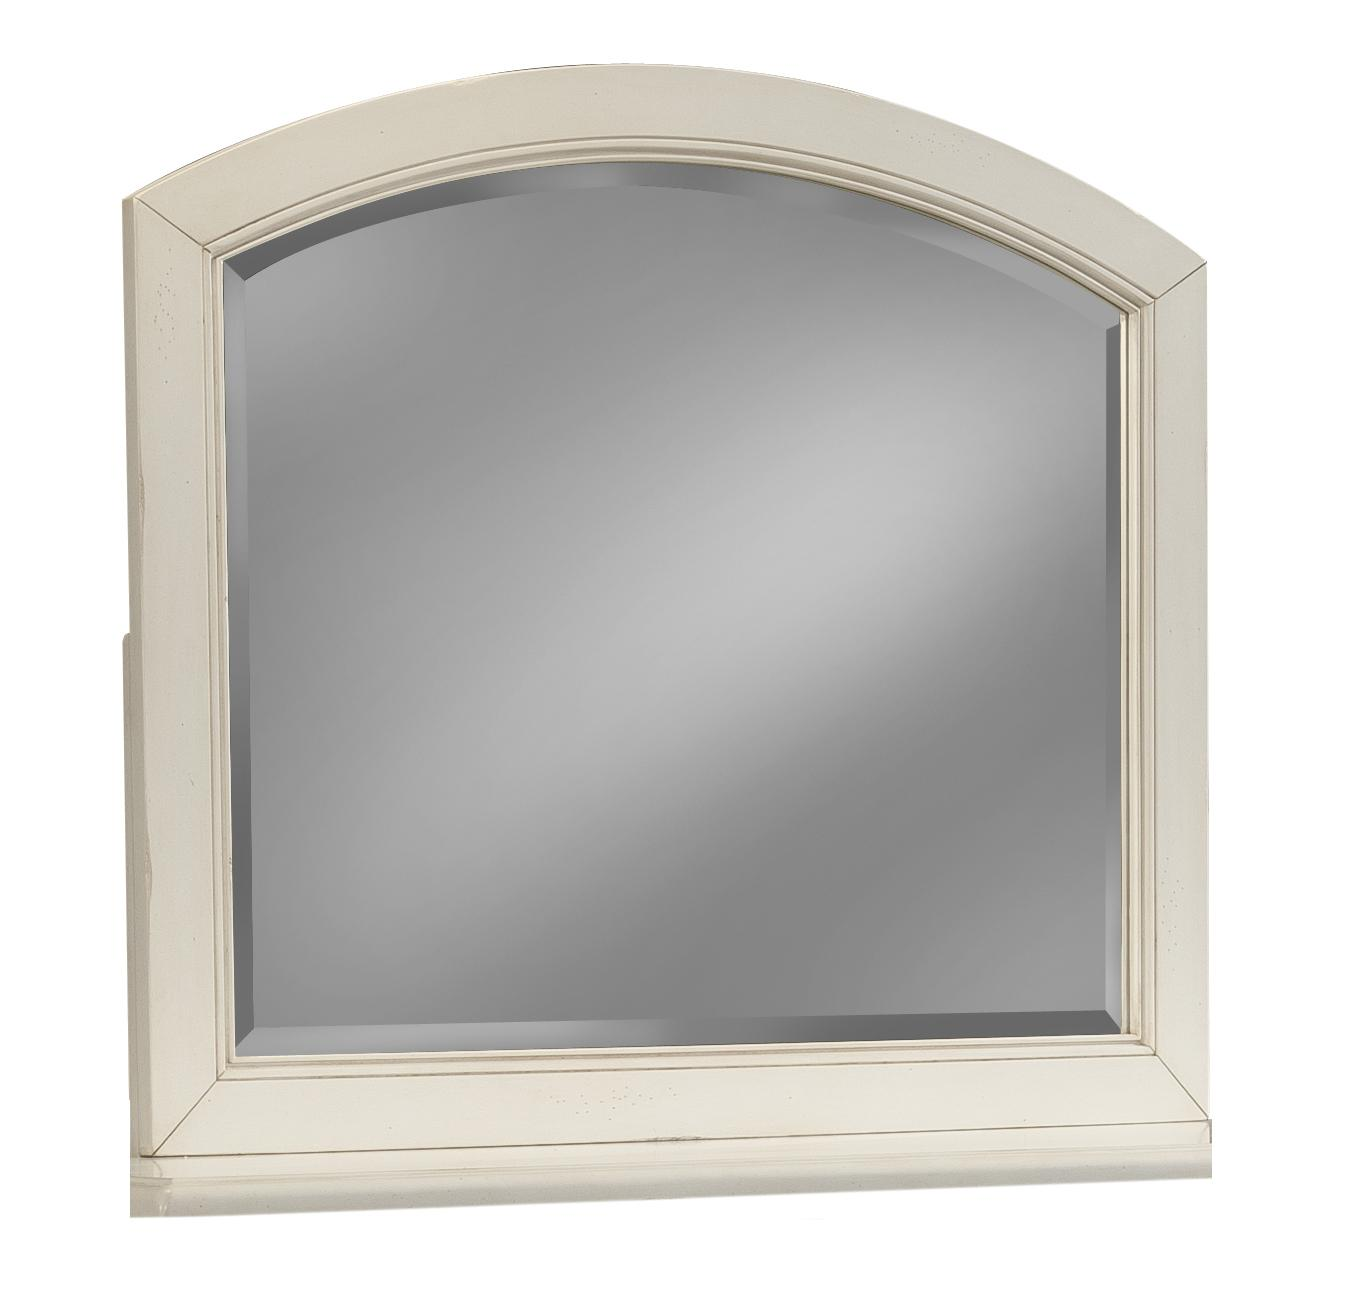 Easton Collection Sea Breeze White Arched Mirror - Item Number: 424-660 MIRR